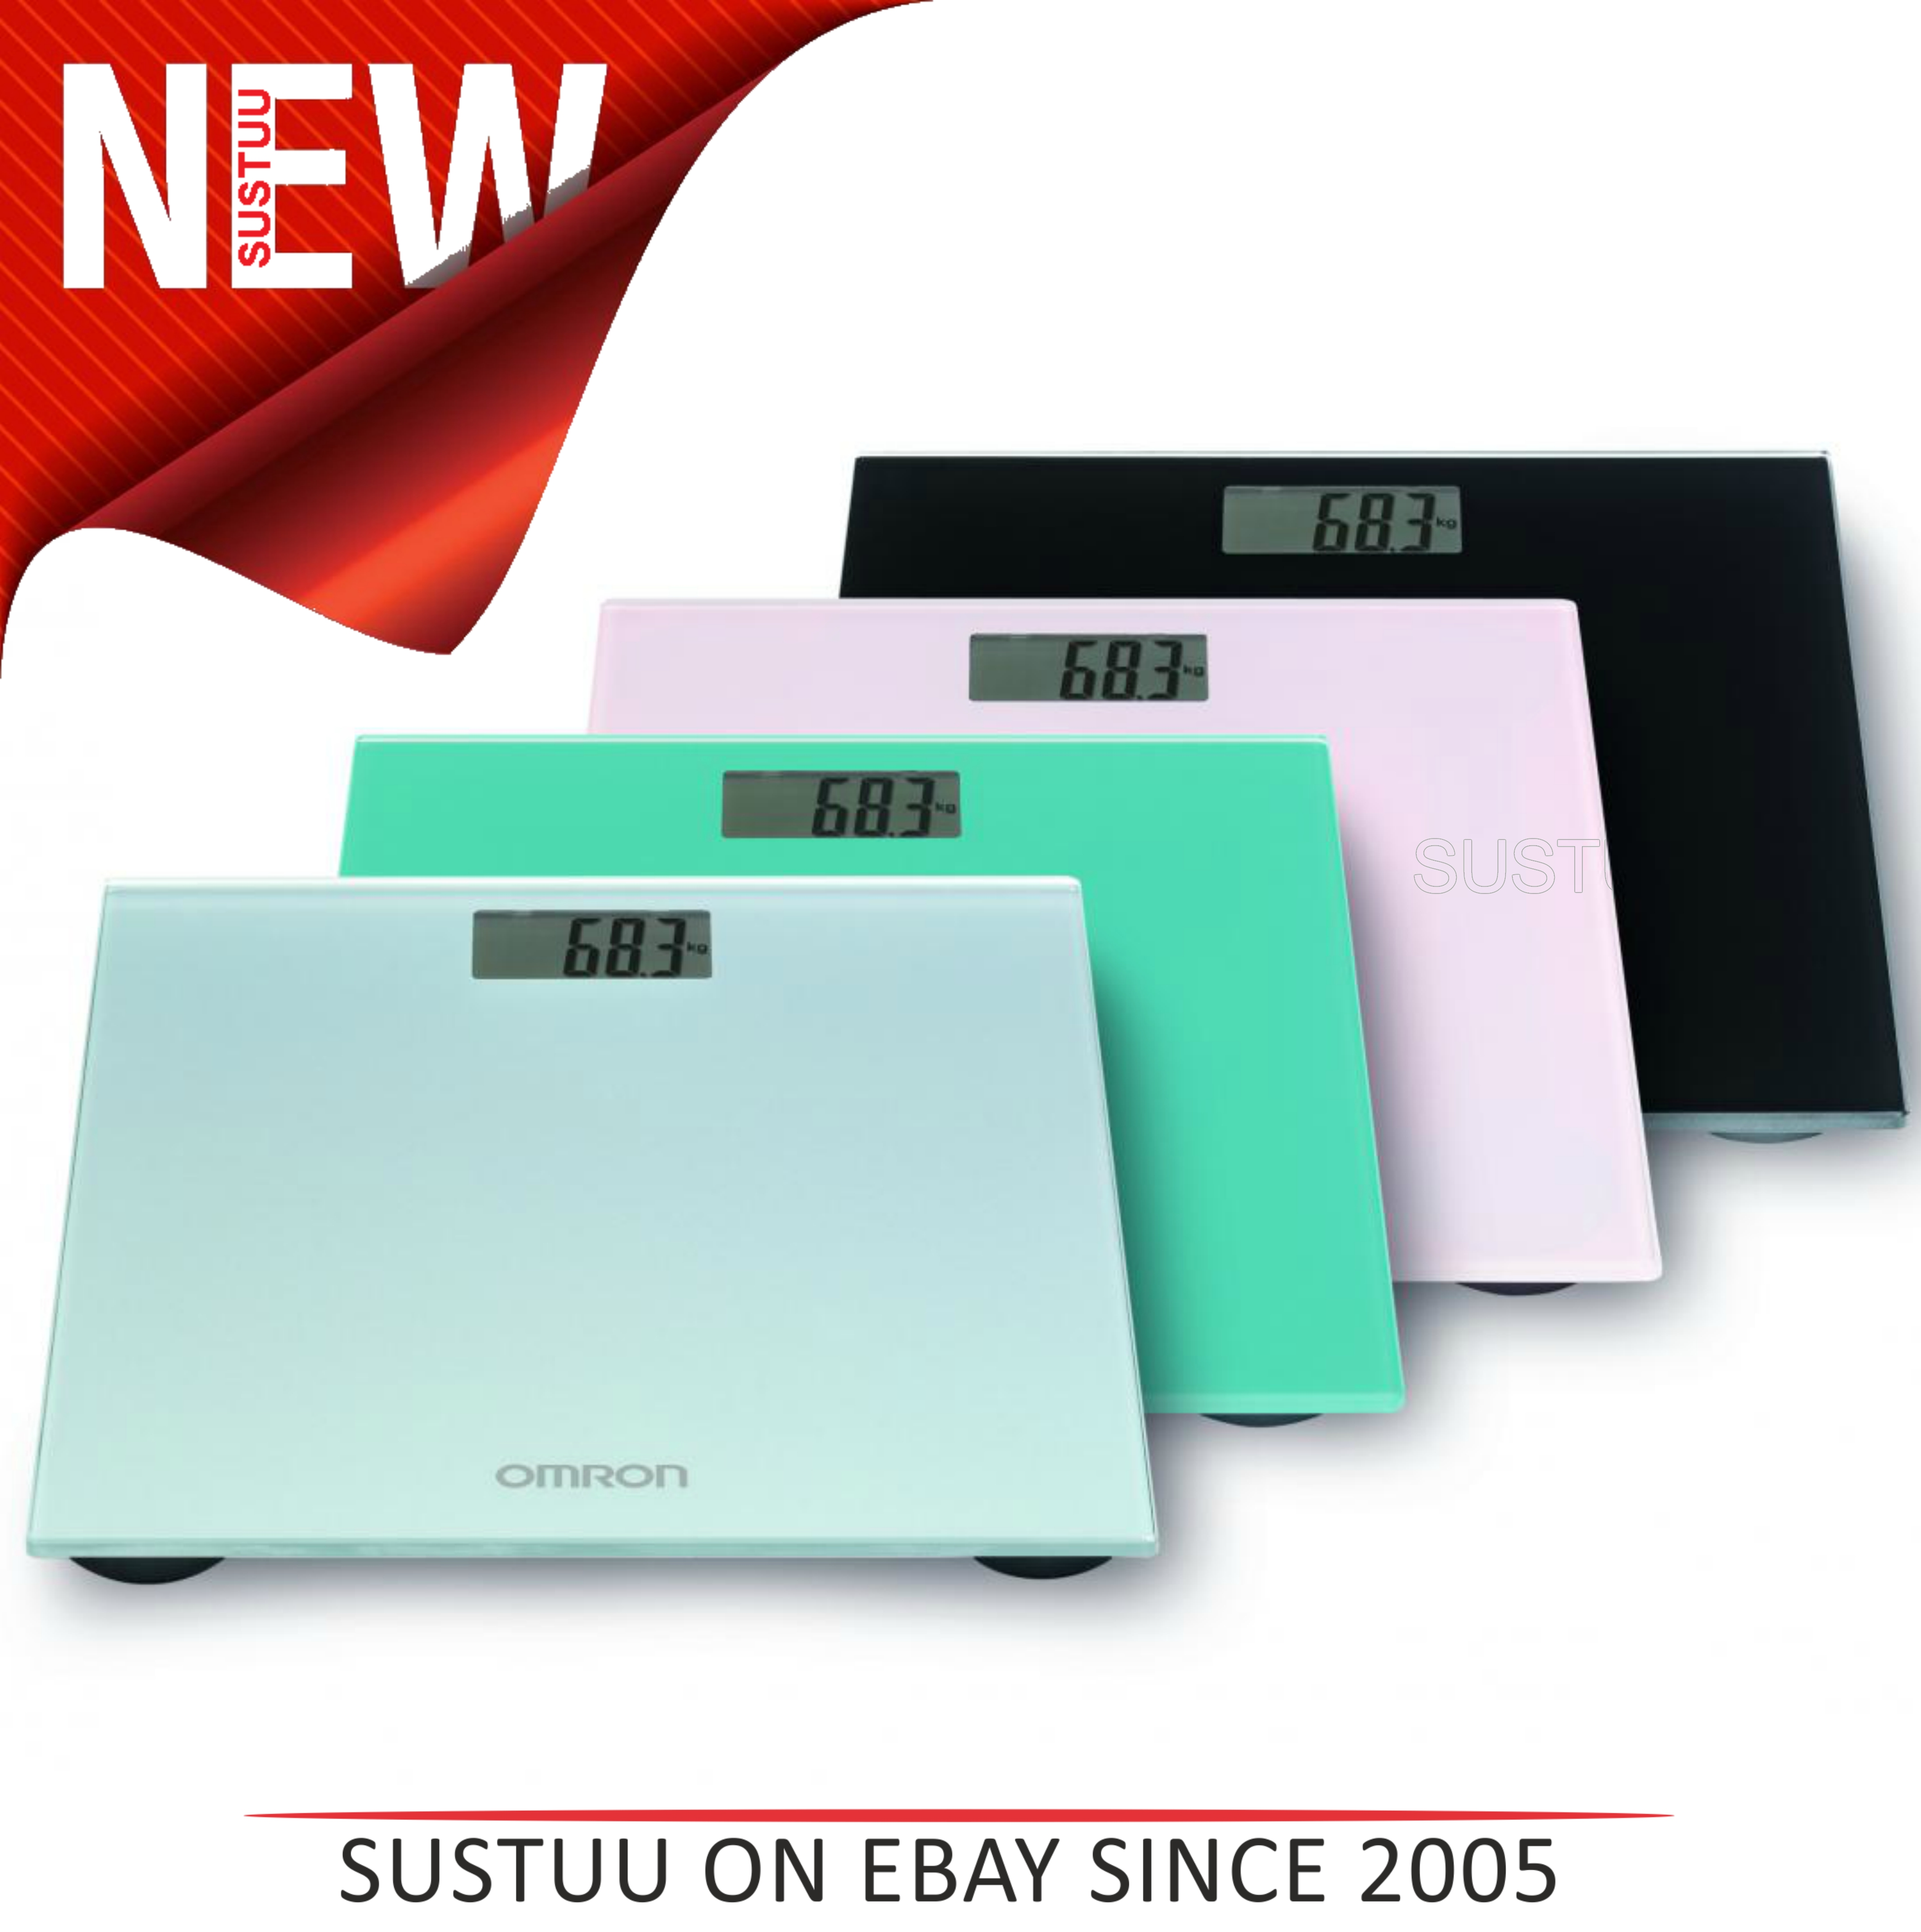 Omron HN289 Digital Personal Body Slim Bathroom Scales|Weighing Technology|NEW